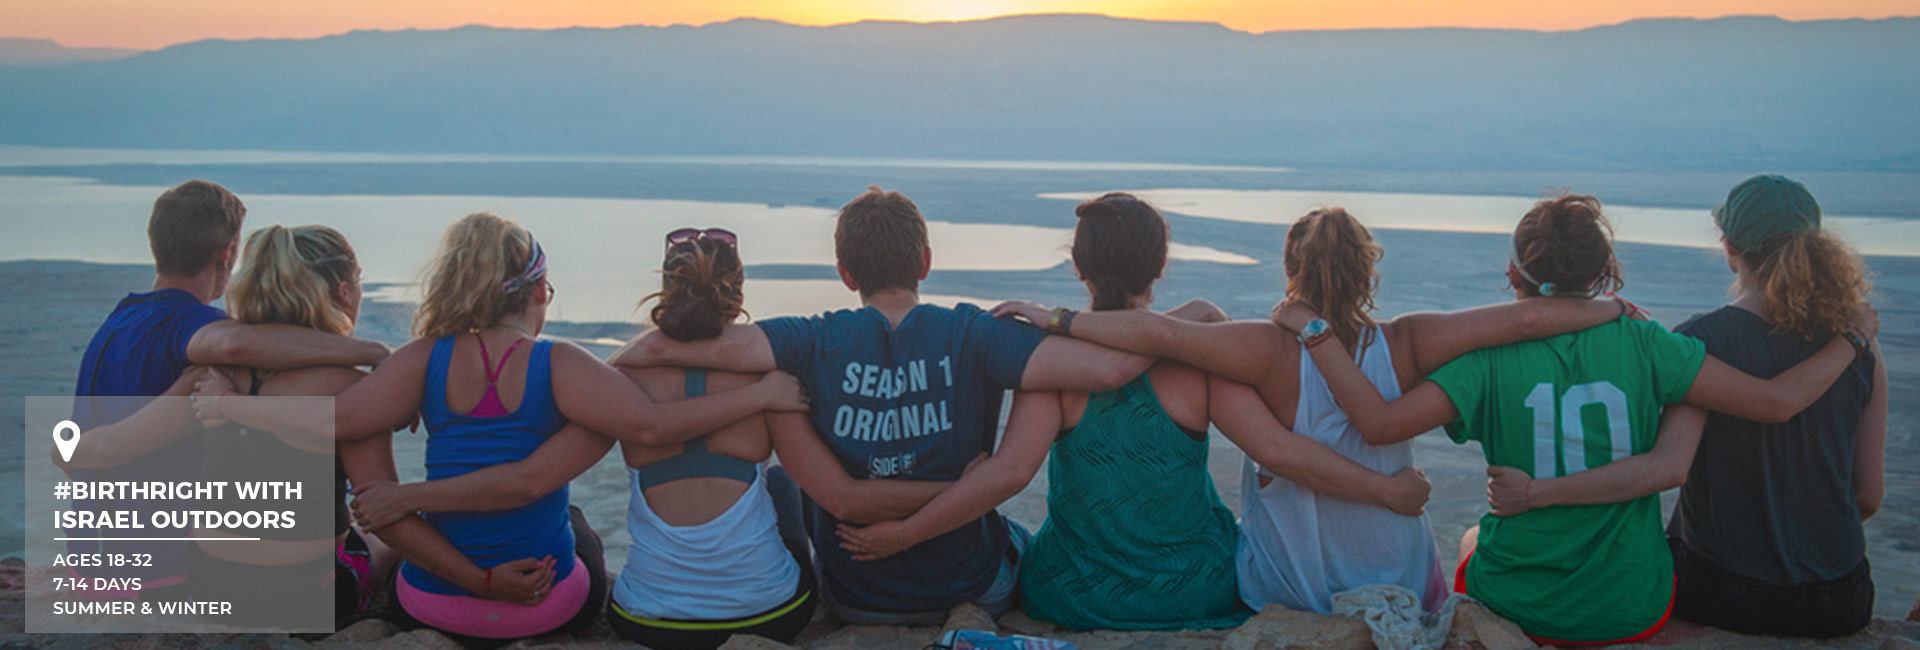 #Birthright with Israel Outdoors - Click to Learn More